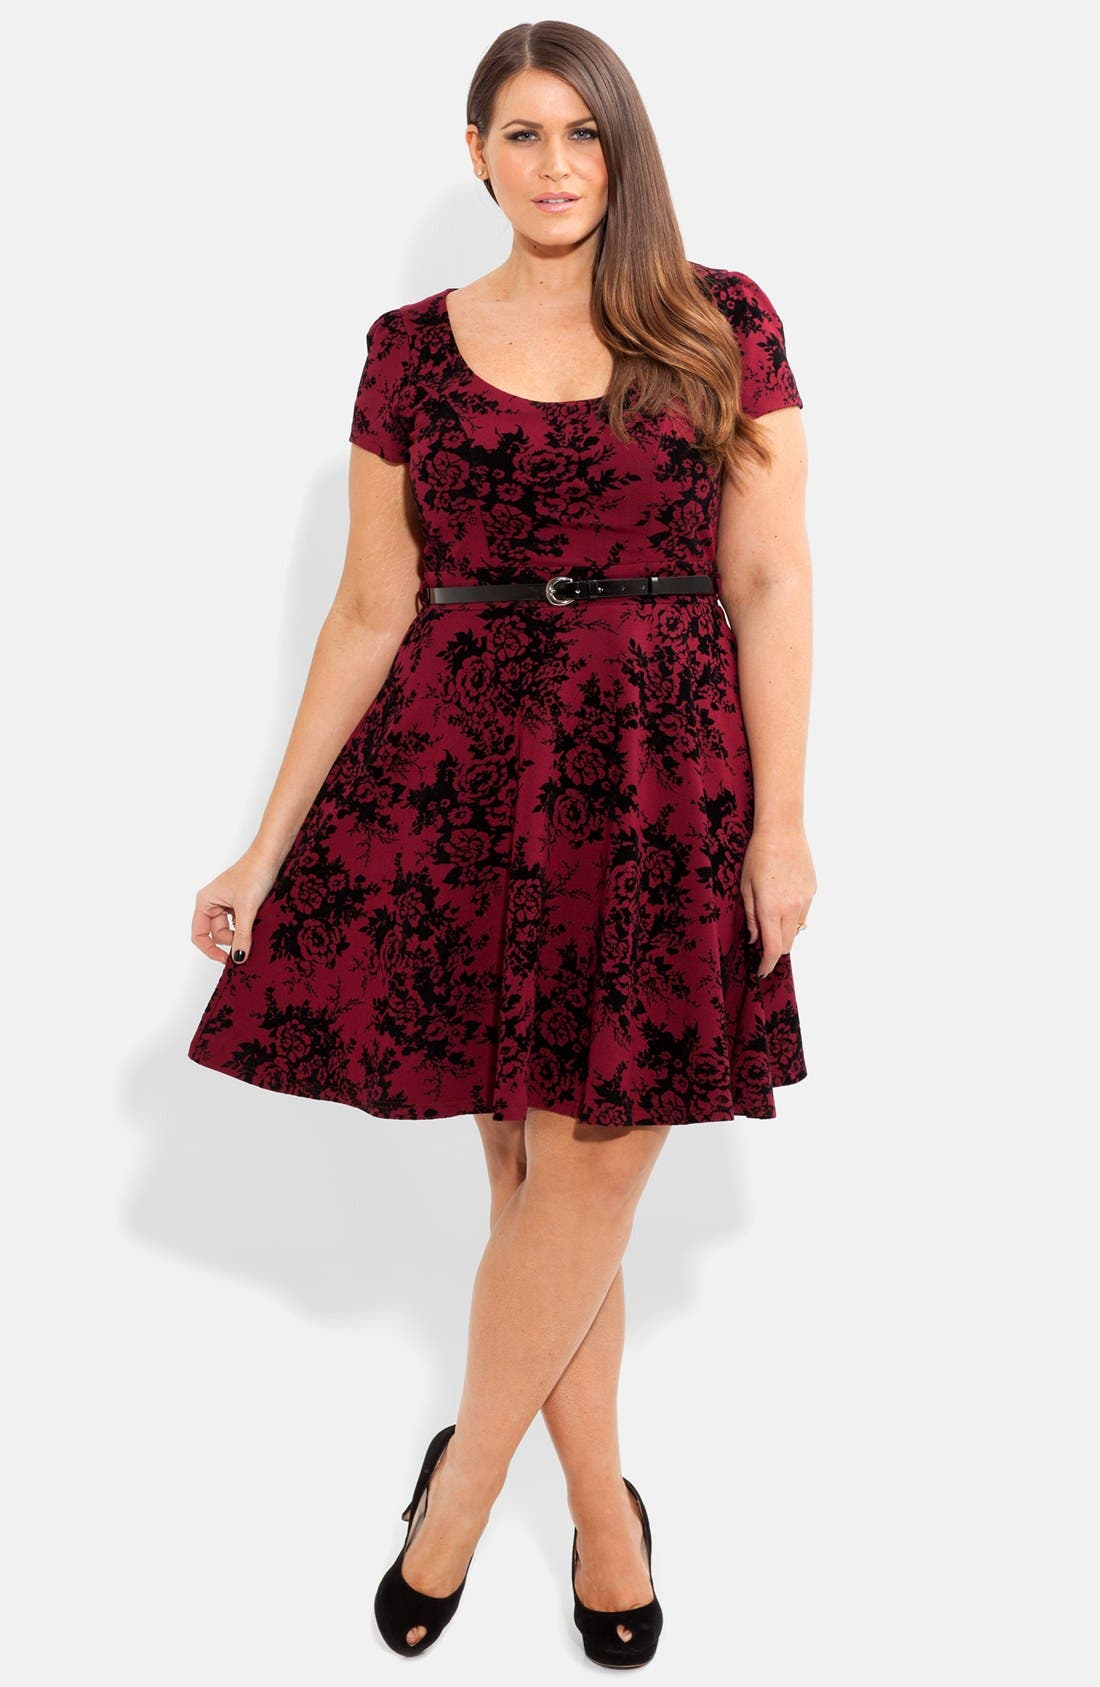 Alternate Image 1 Selected - City Chic Floral Print Skater Dress (Plus Size)